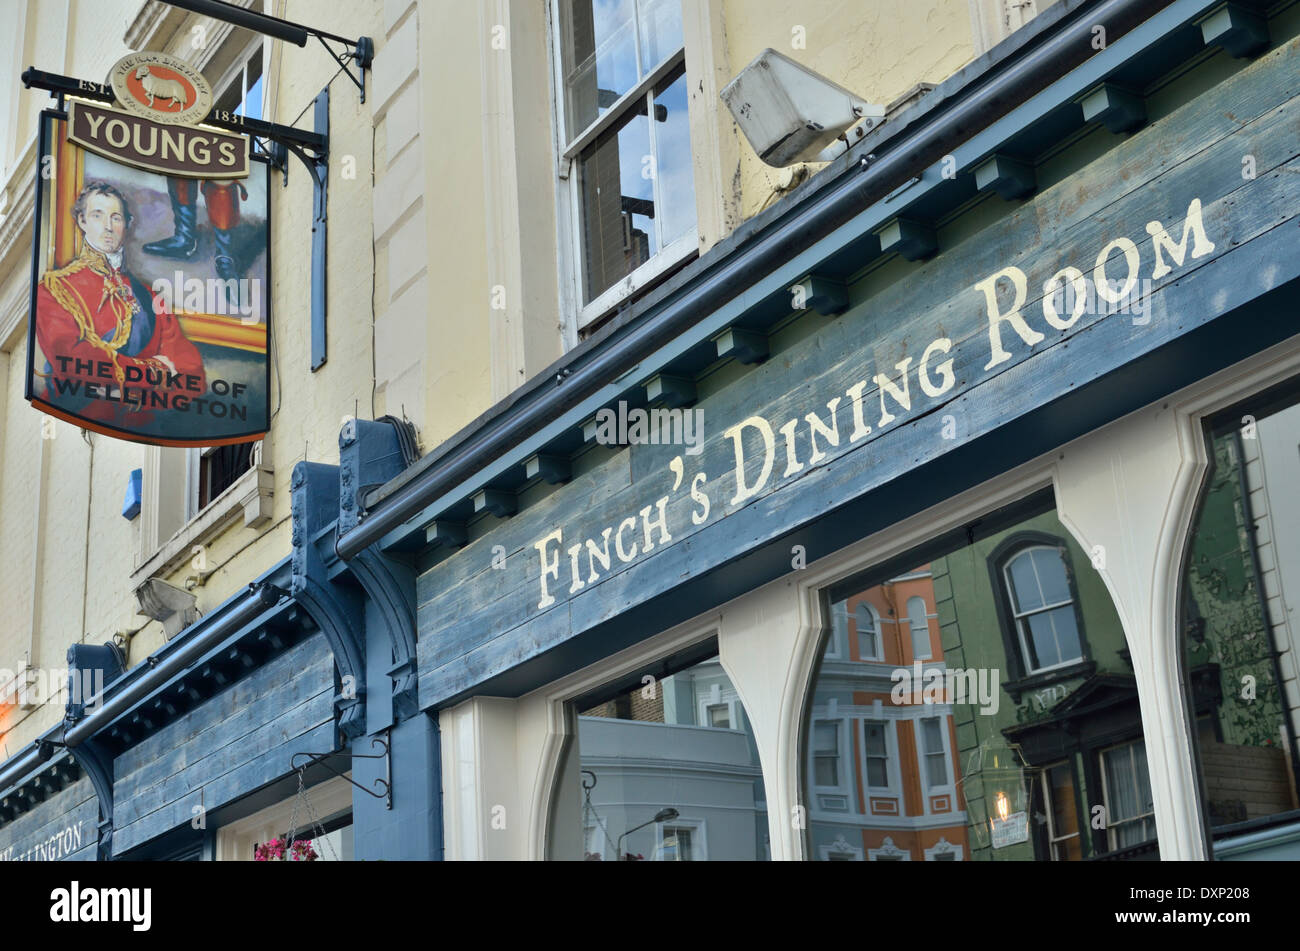 Finch's Dining Room at the Duke of Wellington pub in Portobello Road, Notting Hill, London, UK - Stock Image